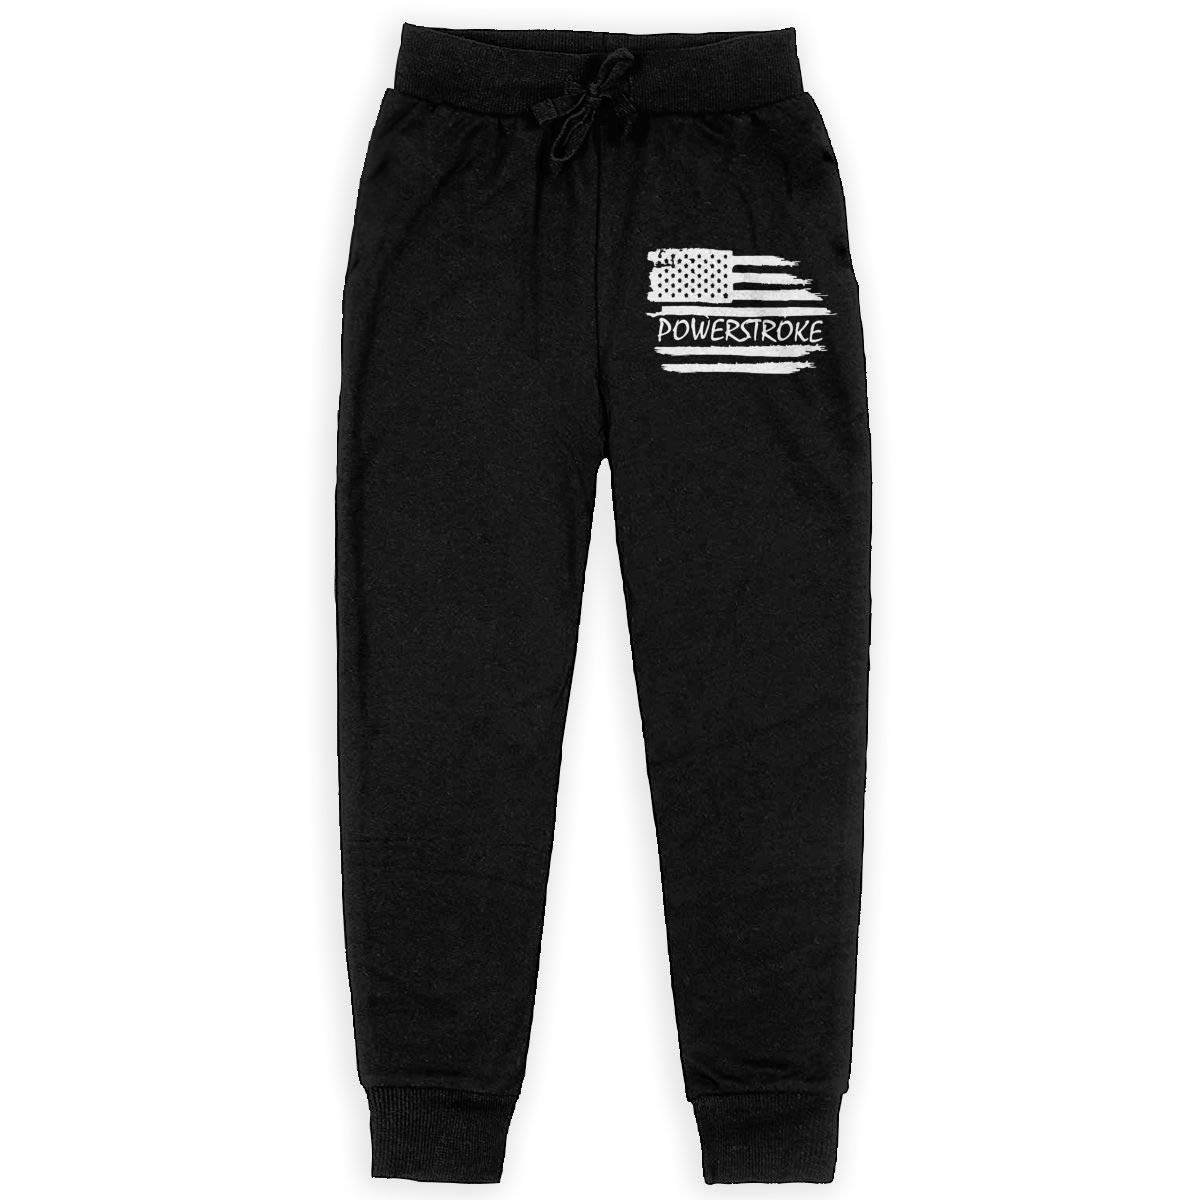 American Flag Ford Powerstroke Youth Sweatpants Boys Jogger Pants Boys Fleece Pants Black